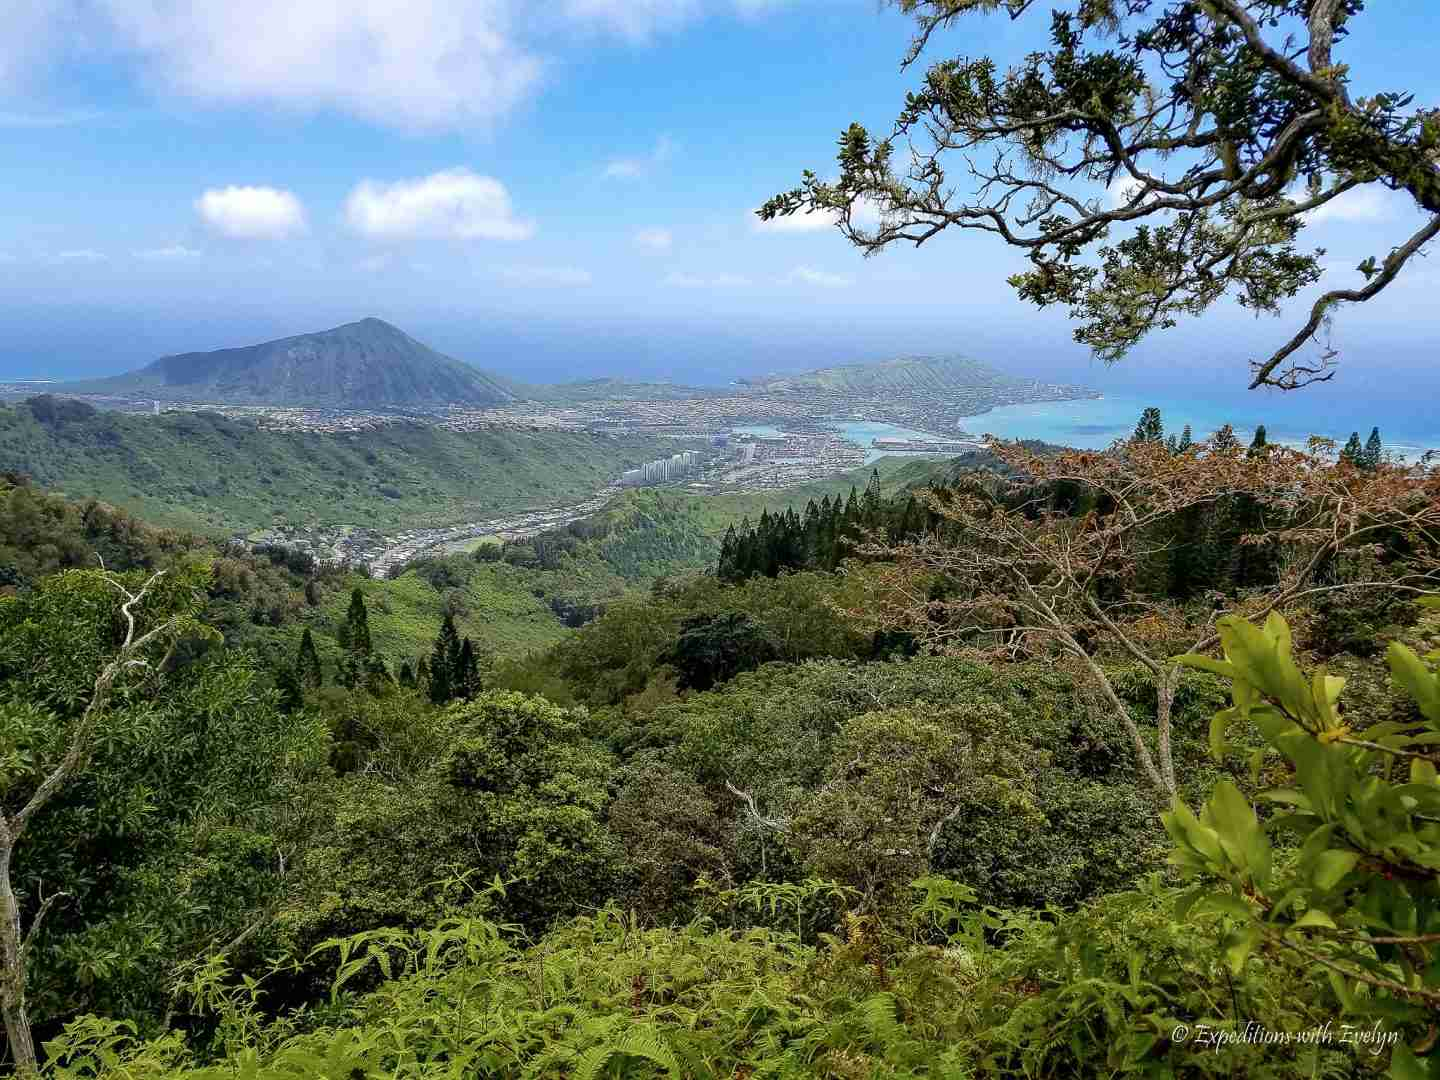 A view like this is why I love hiking.  View overlooking a volcano and the coast from a nearby mountain.